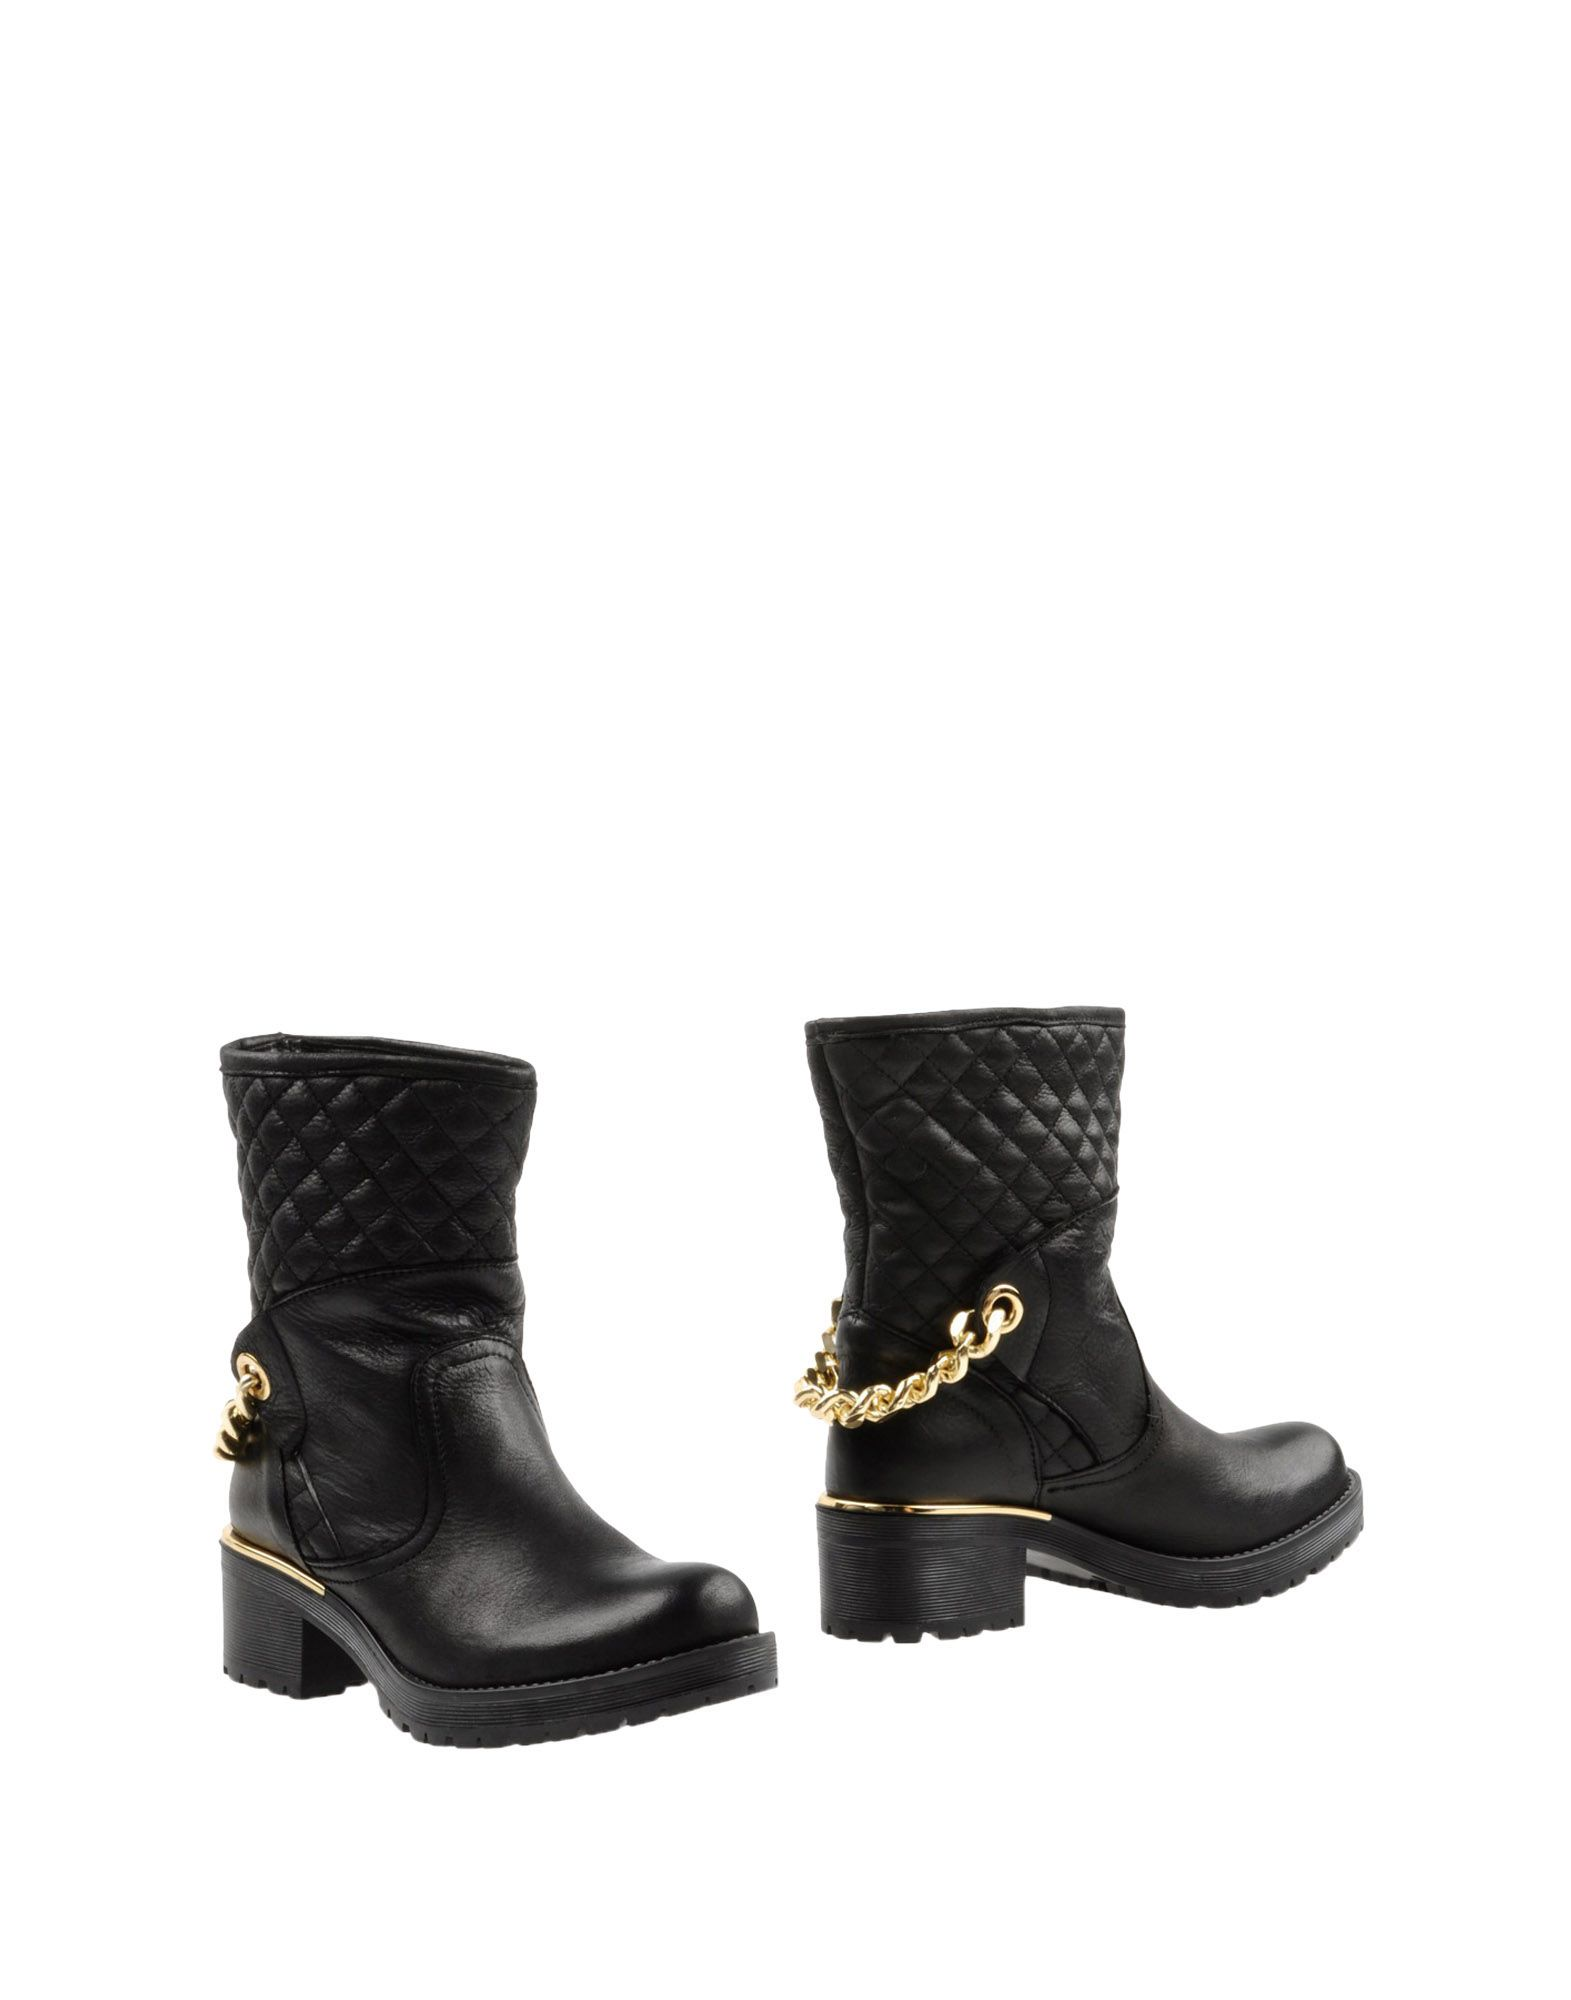 Geneve Ankle Boot Boots - Women Geneve Ankle Boots Boot online on  United Kingdom - 44850525PD 4f9dc7